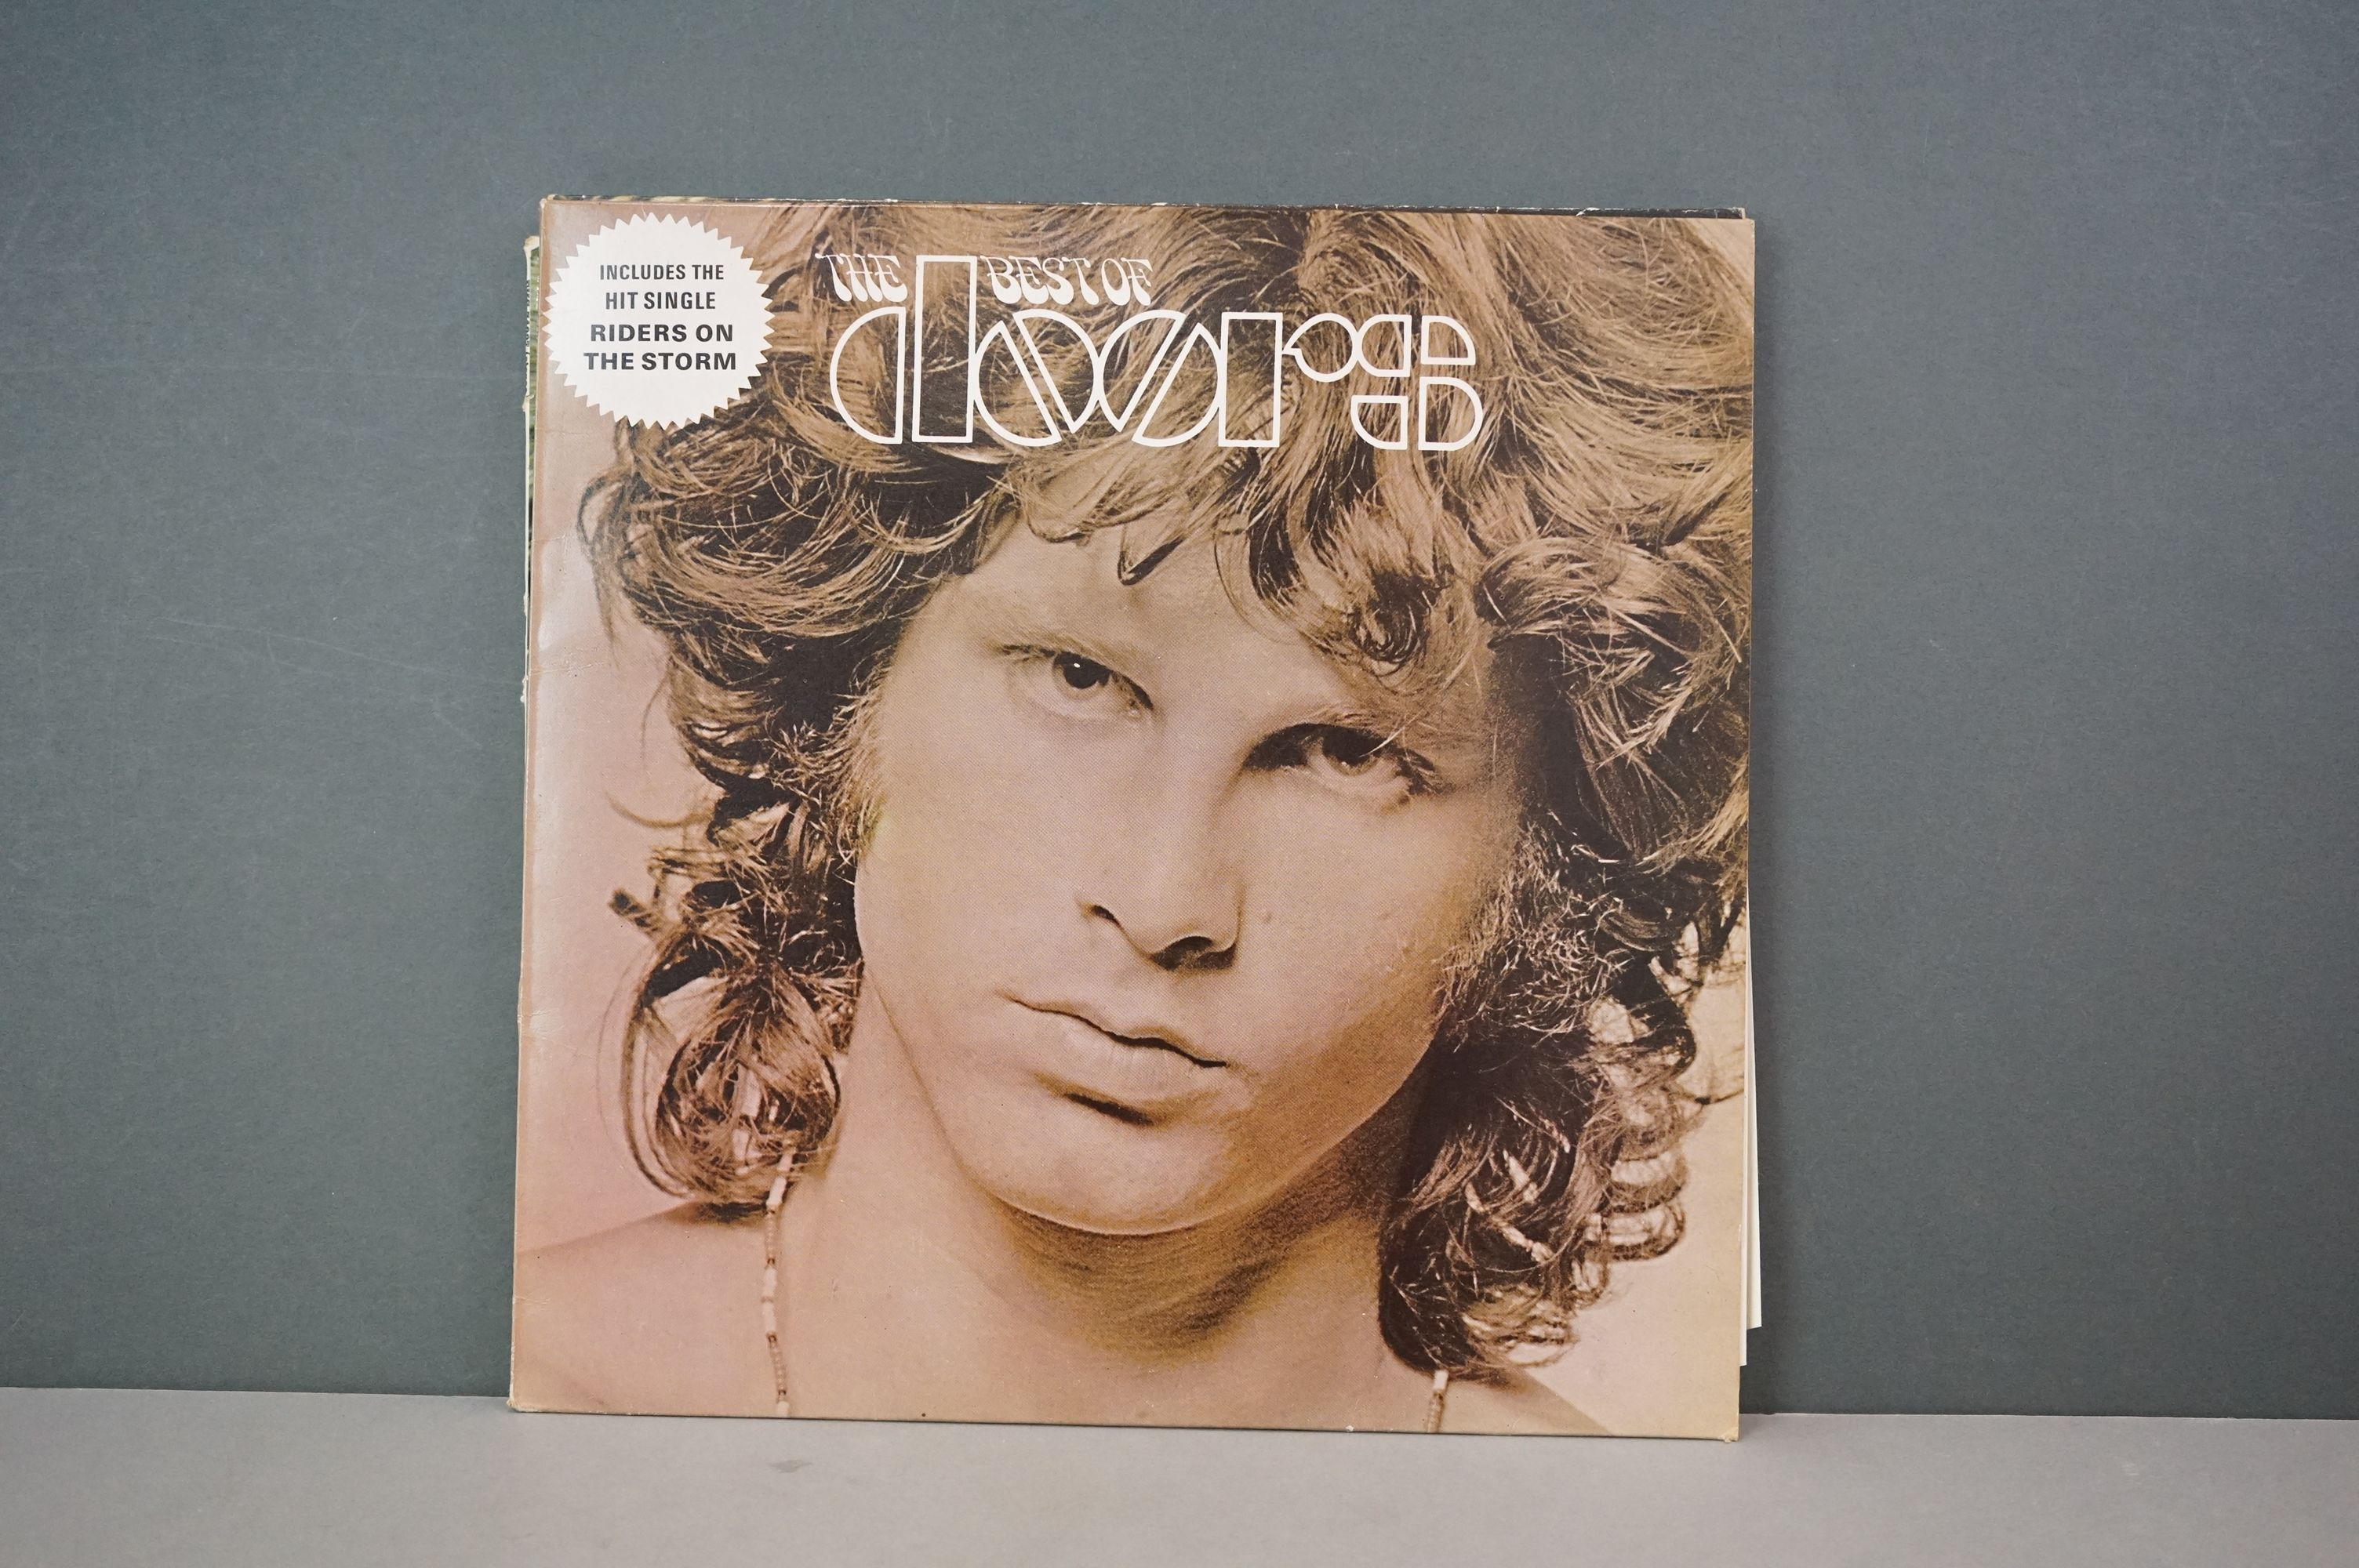 Vinyl - Sixteen The Doors vinyl LP's to include Waiting For The Sun (Elektra Records EKS 74024), The - Image 14 of 17